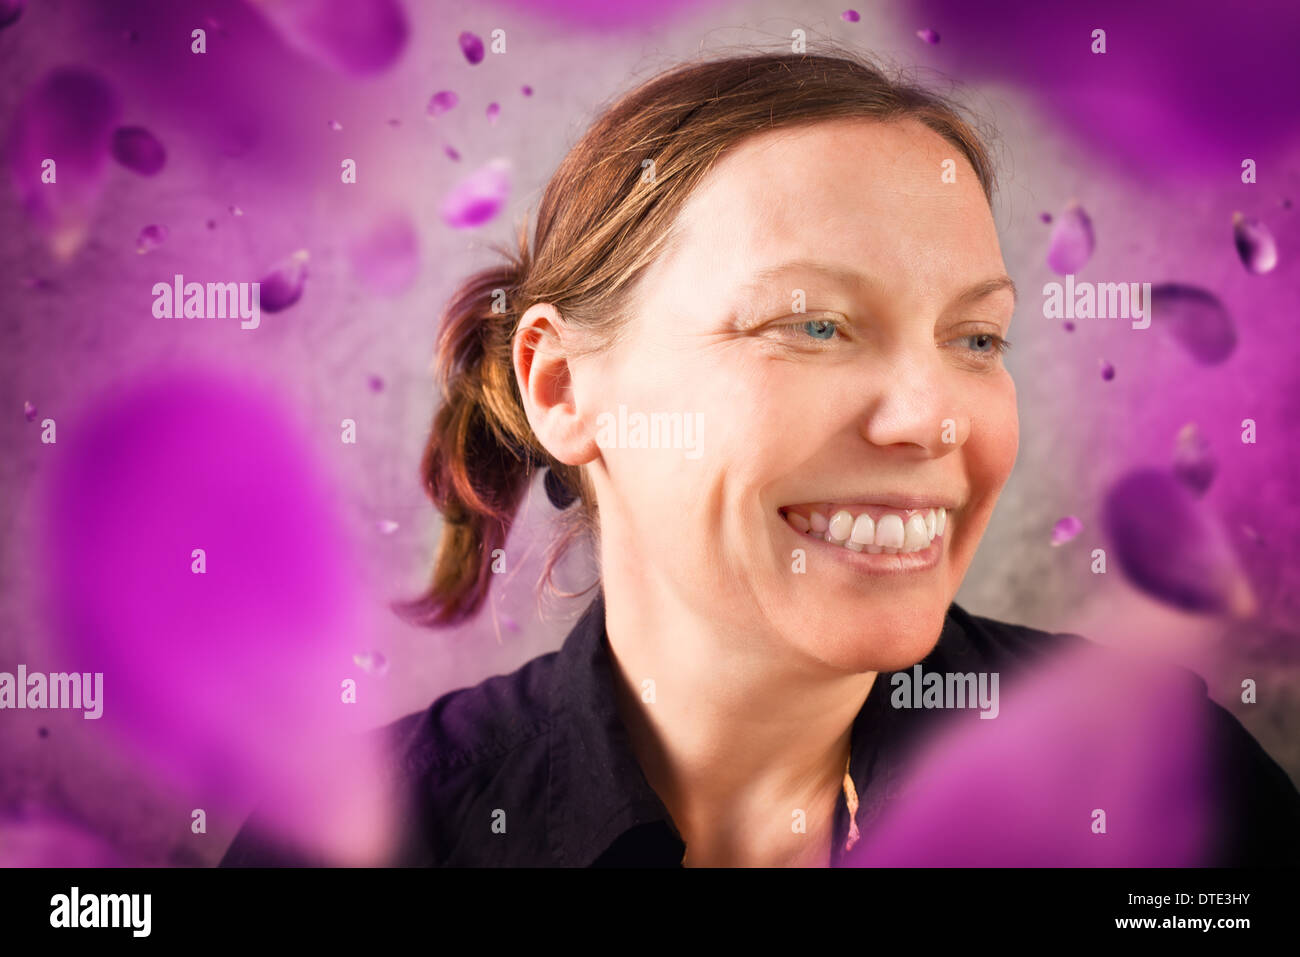 Smiling woman with flower petals falling. Spring season. - Stock Image